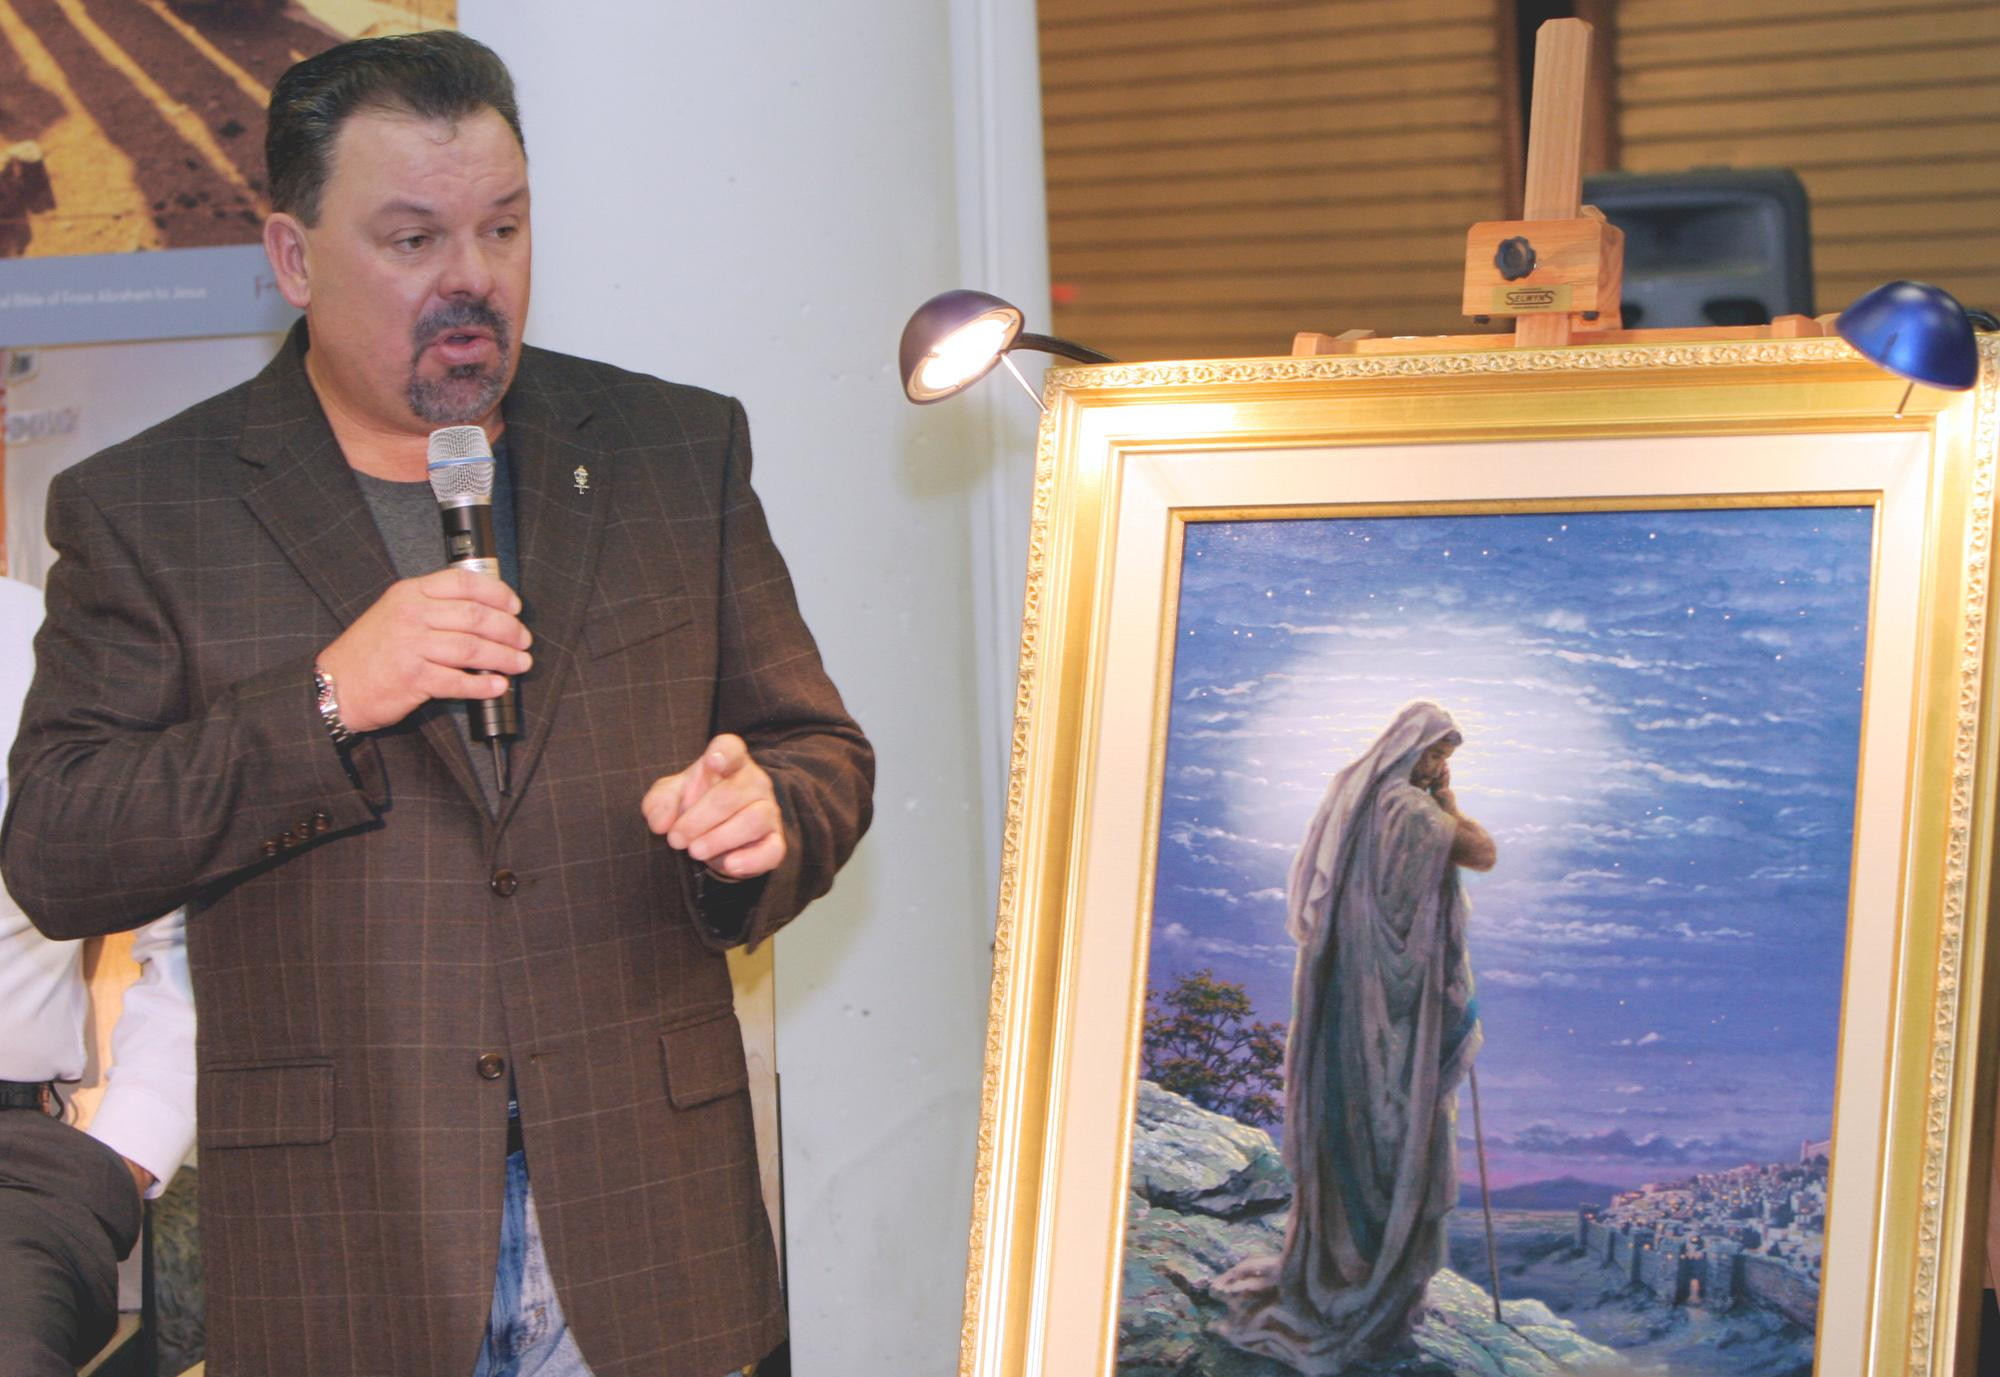 """FILE - In this Sept. 15, 2006 file photo, artist Thomas Kinkade unveils his painting, """"Prayer For Peace,"""" at the opening of the exhibit """"From Abraham to Jesus,"""" in Atlanta. Kinkade, whose brushwork paintings of idyllic landscapes, cottages and churches have been big sellers for dealers across the United States, died Friday, April 6, 2012, a family spokesman said. He was 54. (AP Photo/Gene Blythe, File)"""